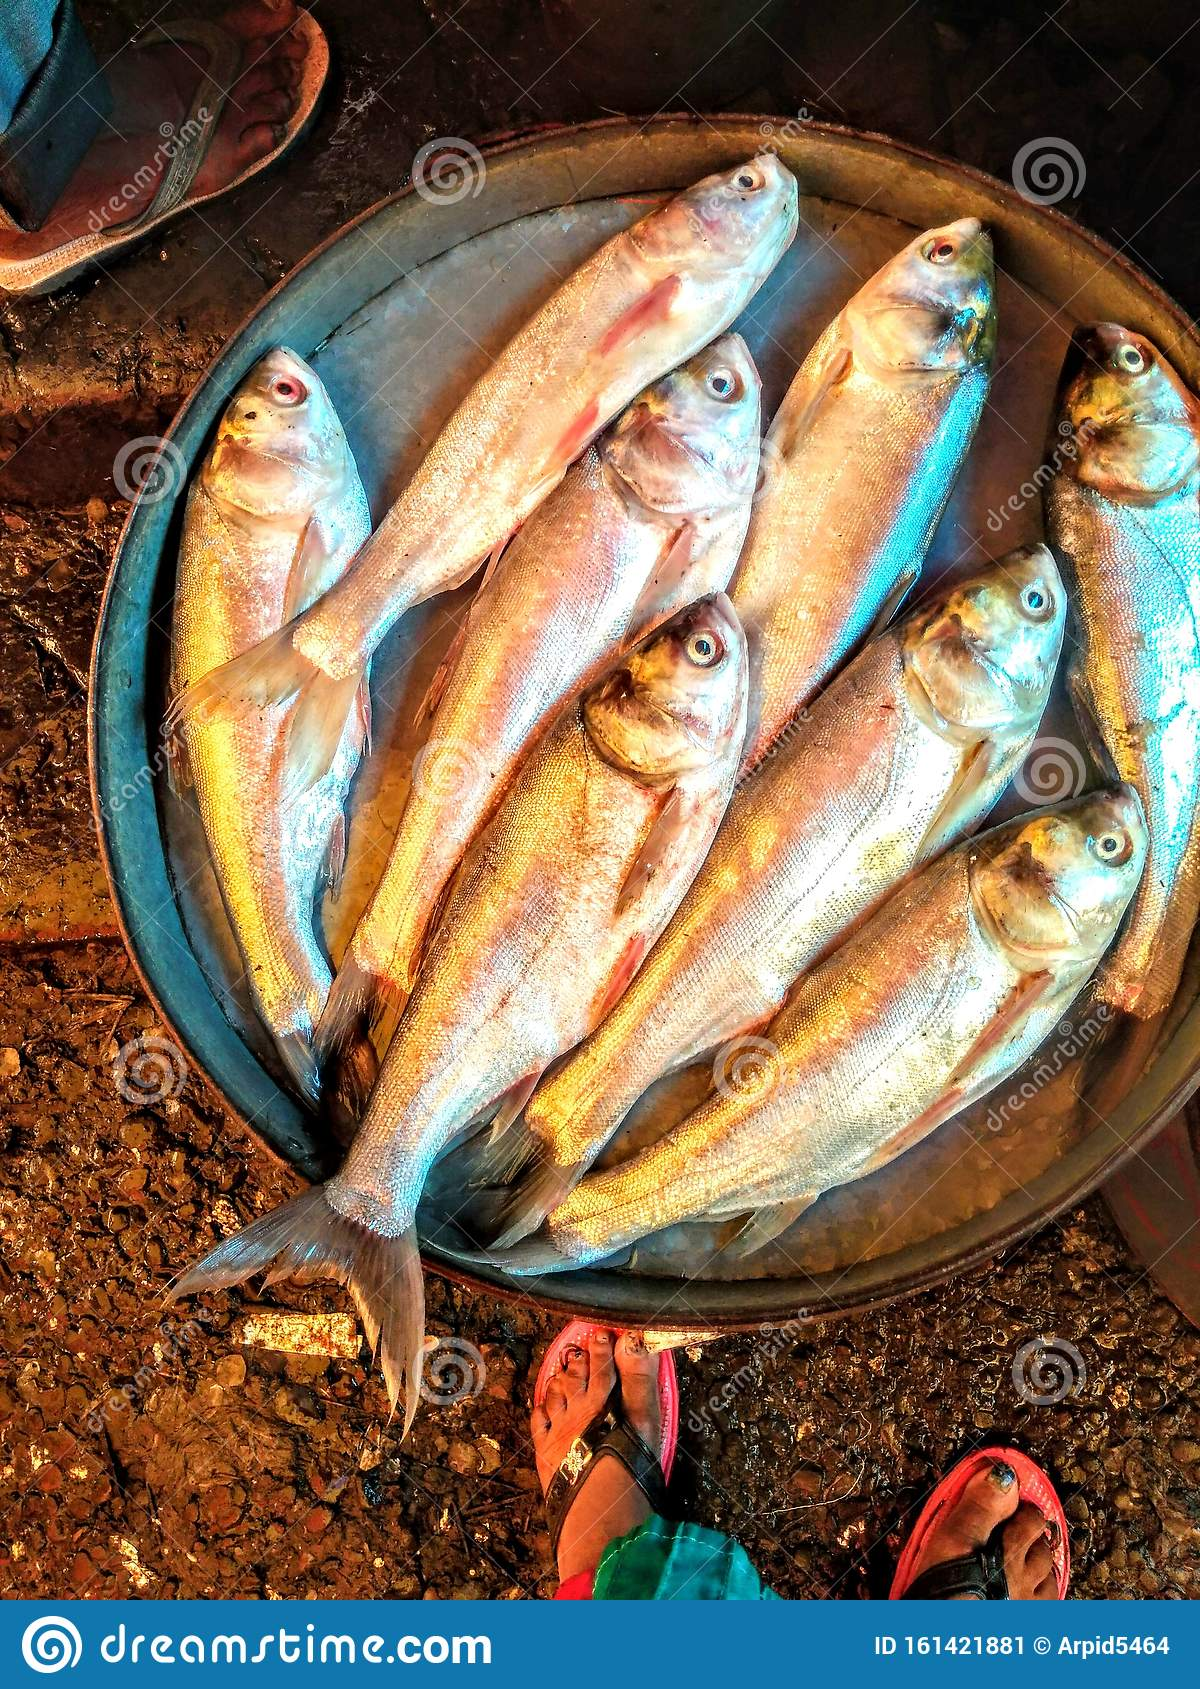 South Asia Popular Fish Name Silver Fish Non Veg Food Stock Image Image Of Food Found 161421881